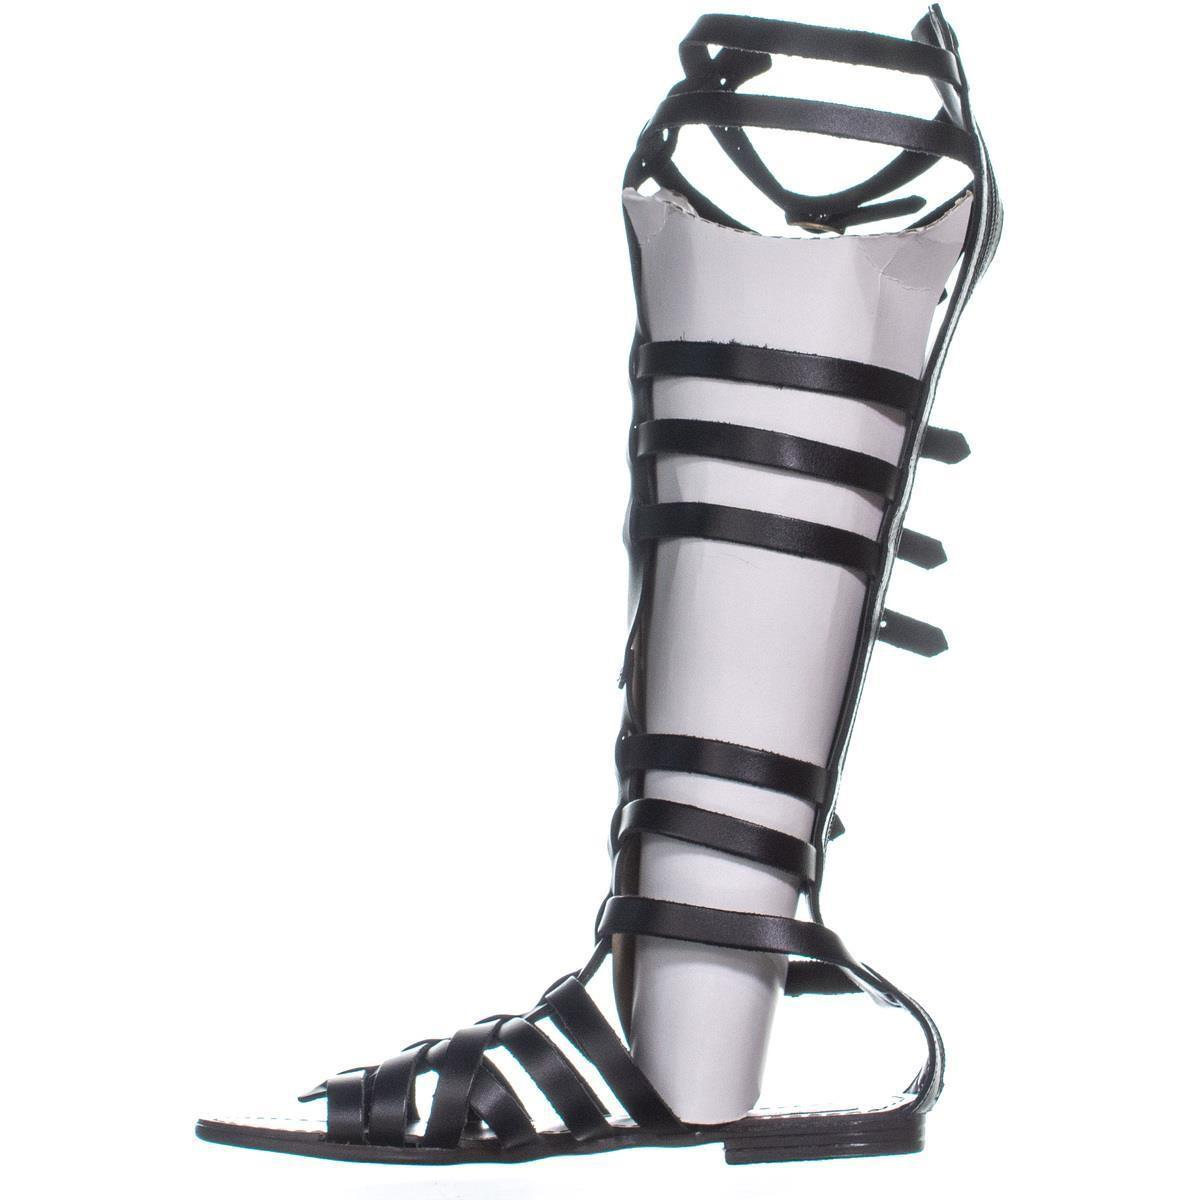 08bb9b1375ec Lyst - Steve Madden Sparta Gladiator Sandals in Black